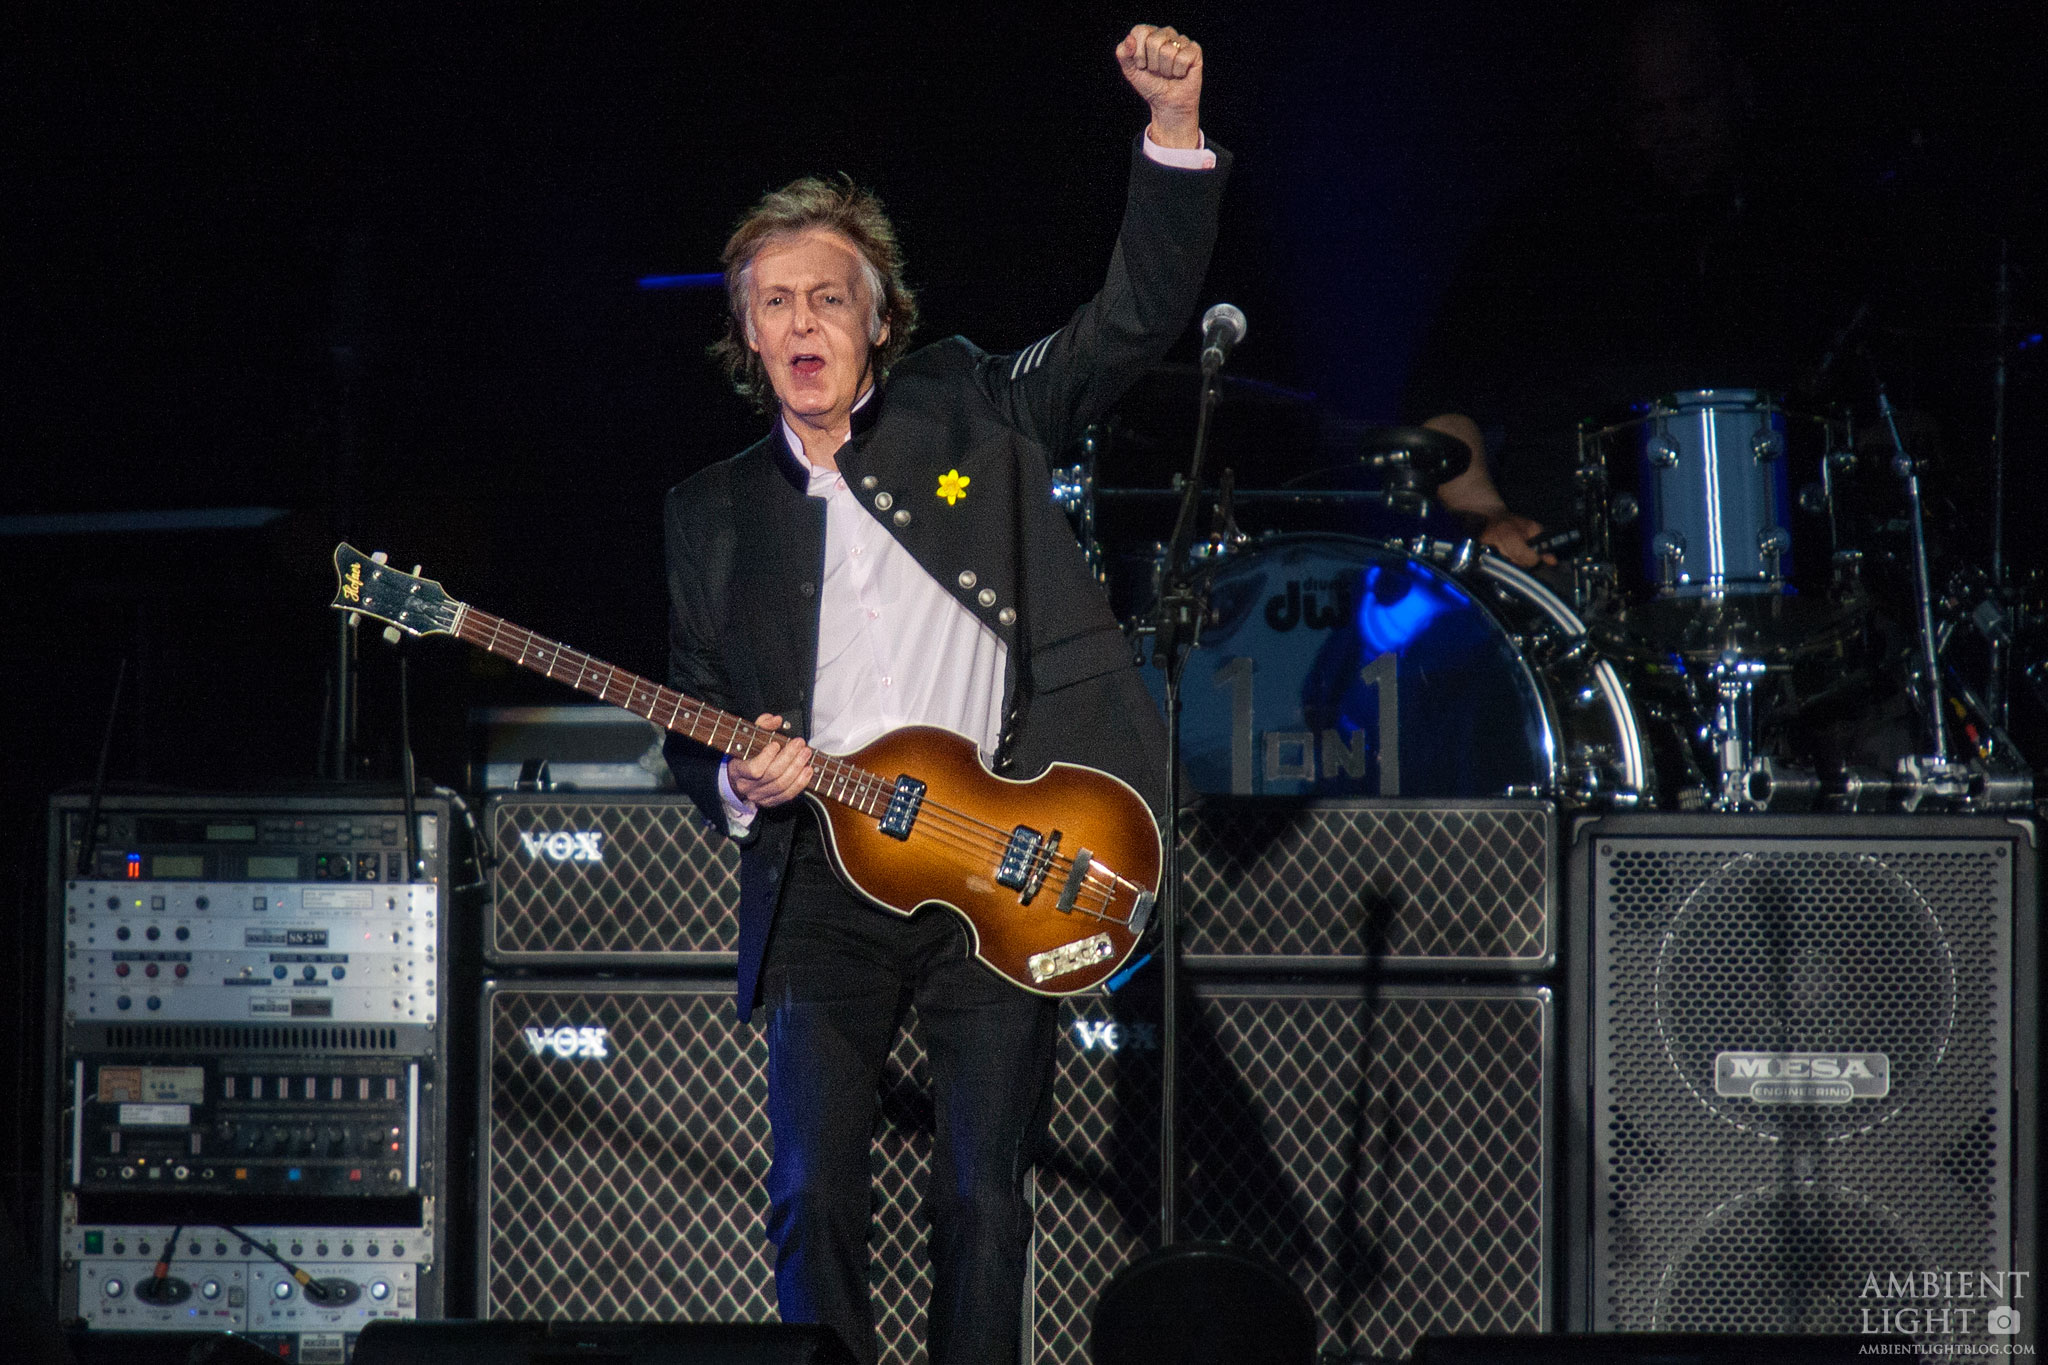 Paul McCartney Performing Live In Auckland New Zealand 2017 Image By Doug Peters